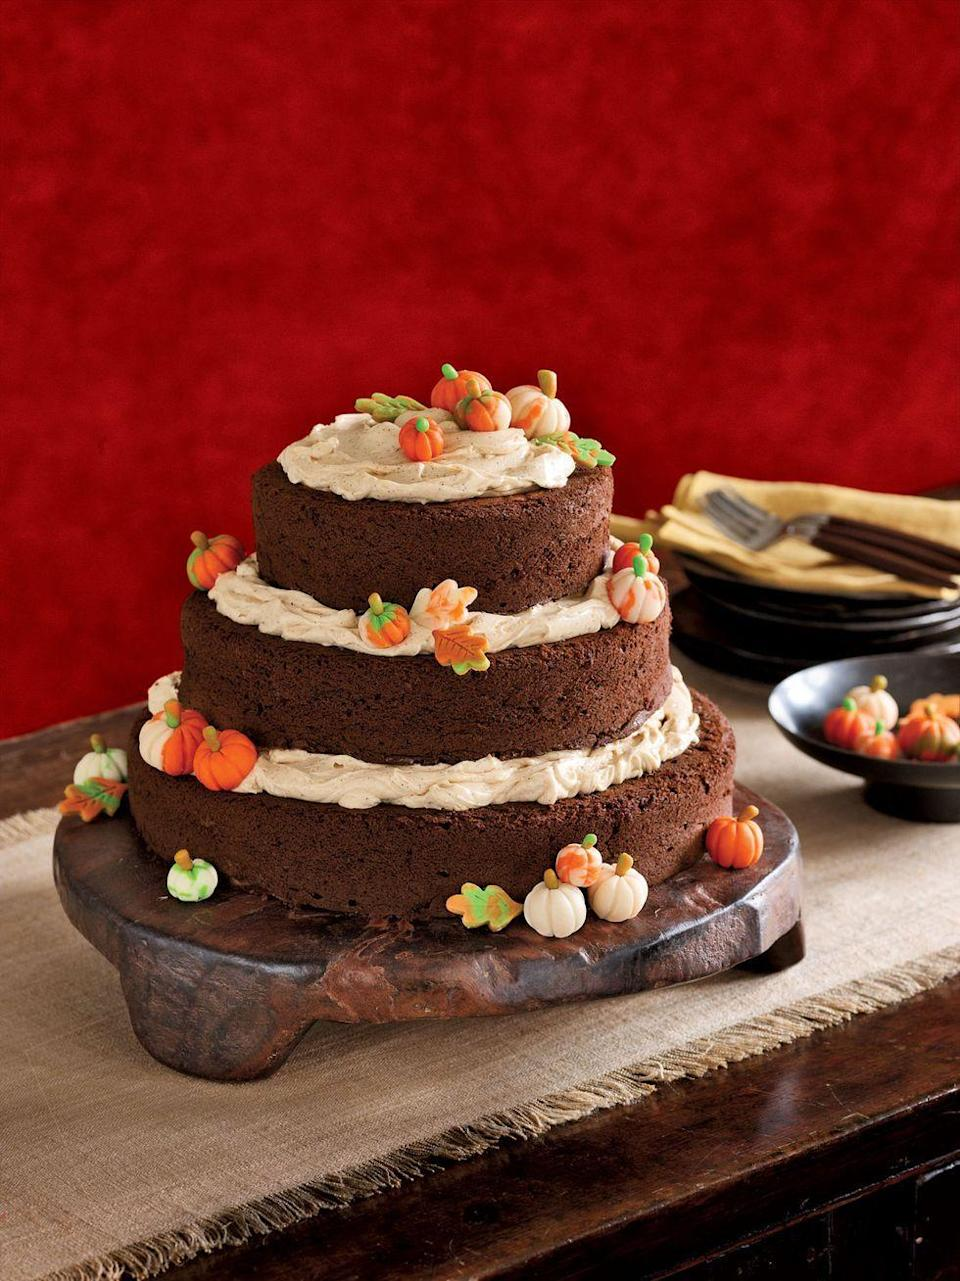 """<p>Decorate this triple-layered pumpkin cake with edible pumpkin candies for a cute dessert that the kids will love even more than their Halloween haul.</p><p><em><a href=""""https://www.womansday.com/food-recipes/food-drinks/recipes/a13686/pumpkin-spice-cake-3559/"""" rel=""""nofollow noopener"""" target=""""_blank"""" data-ylk=""""slk:Get the recipe from Woman's Day »"""" class=""""link rapid-noclick-resp"""">Get the recipe from Woman's Day »</a></em></p>"""